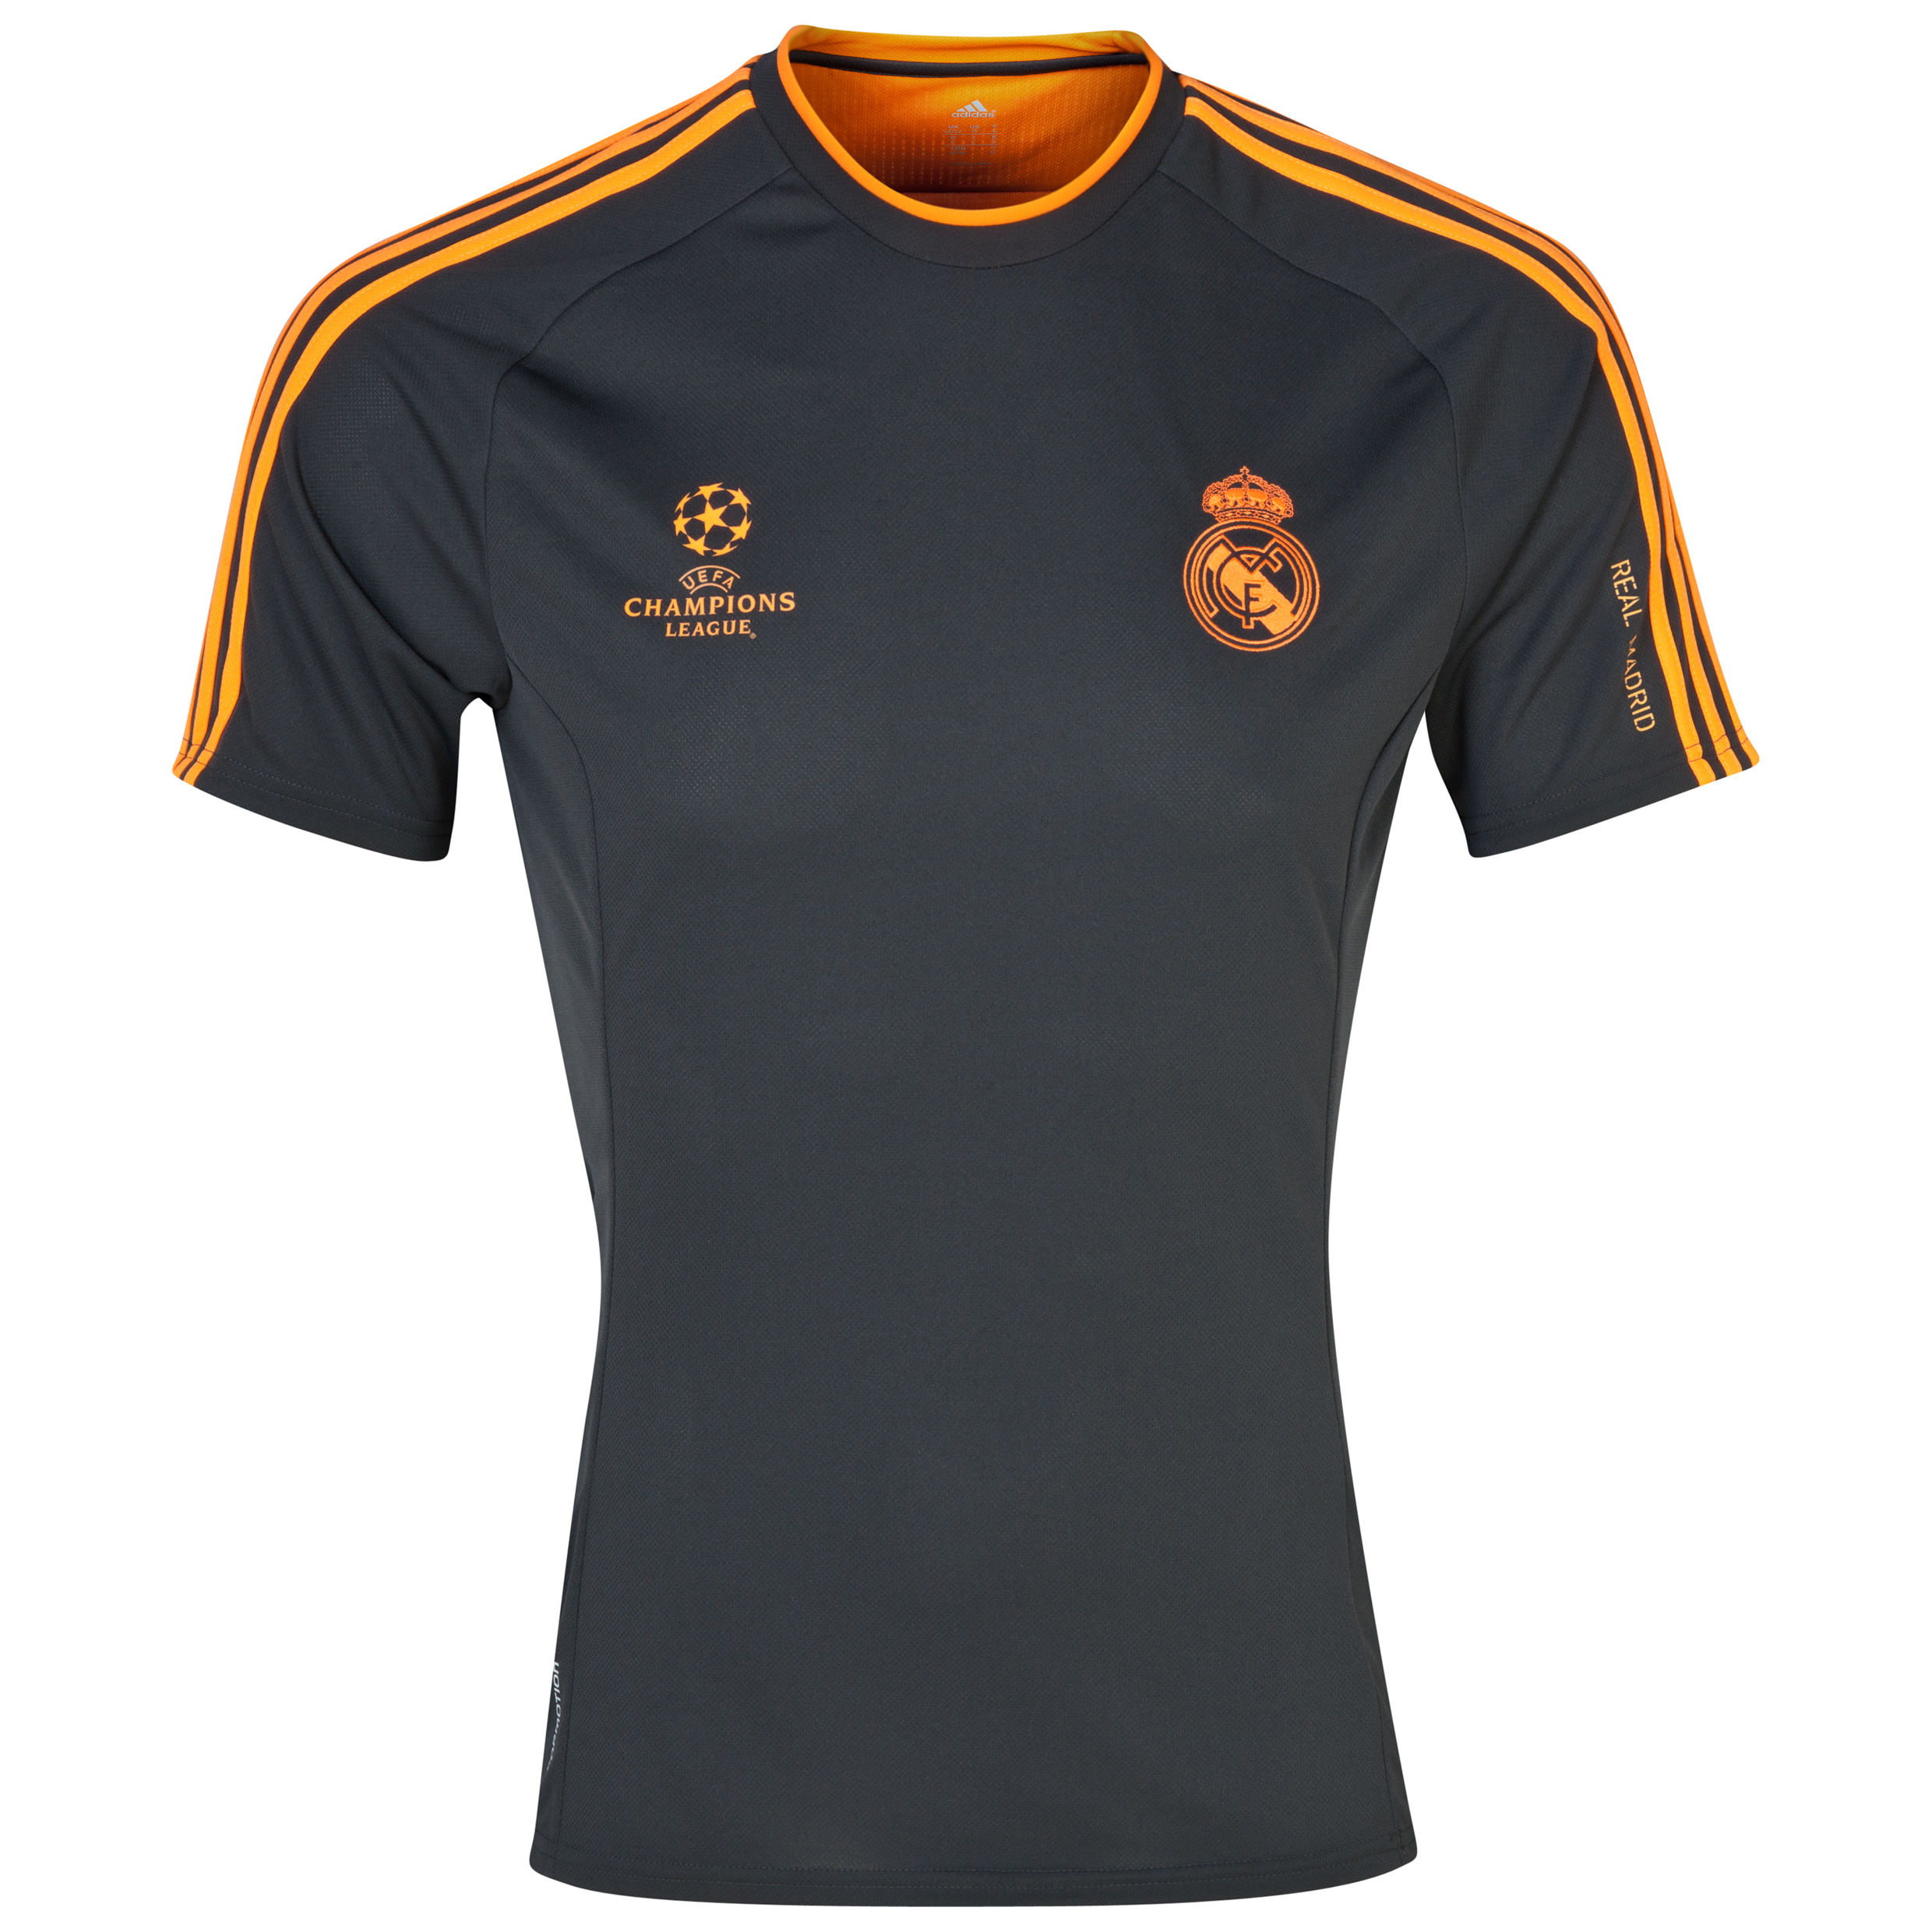 Real Madrid UCL Training Climacool Jersey - Dark Shale/Zest Dk Blue